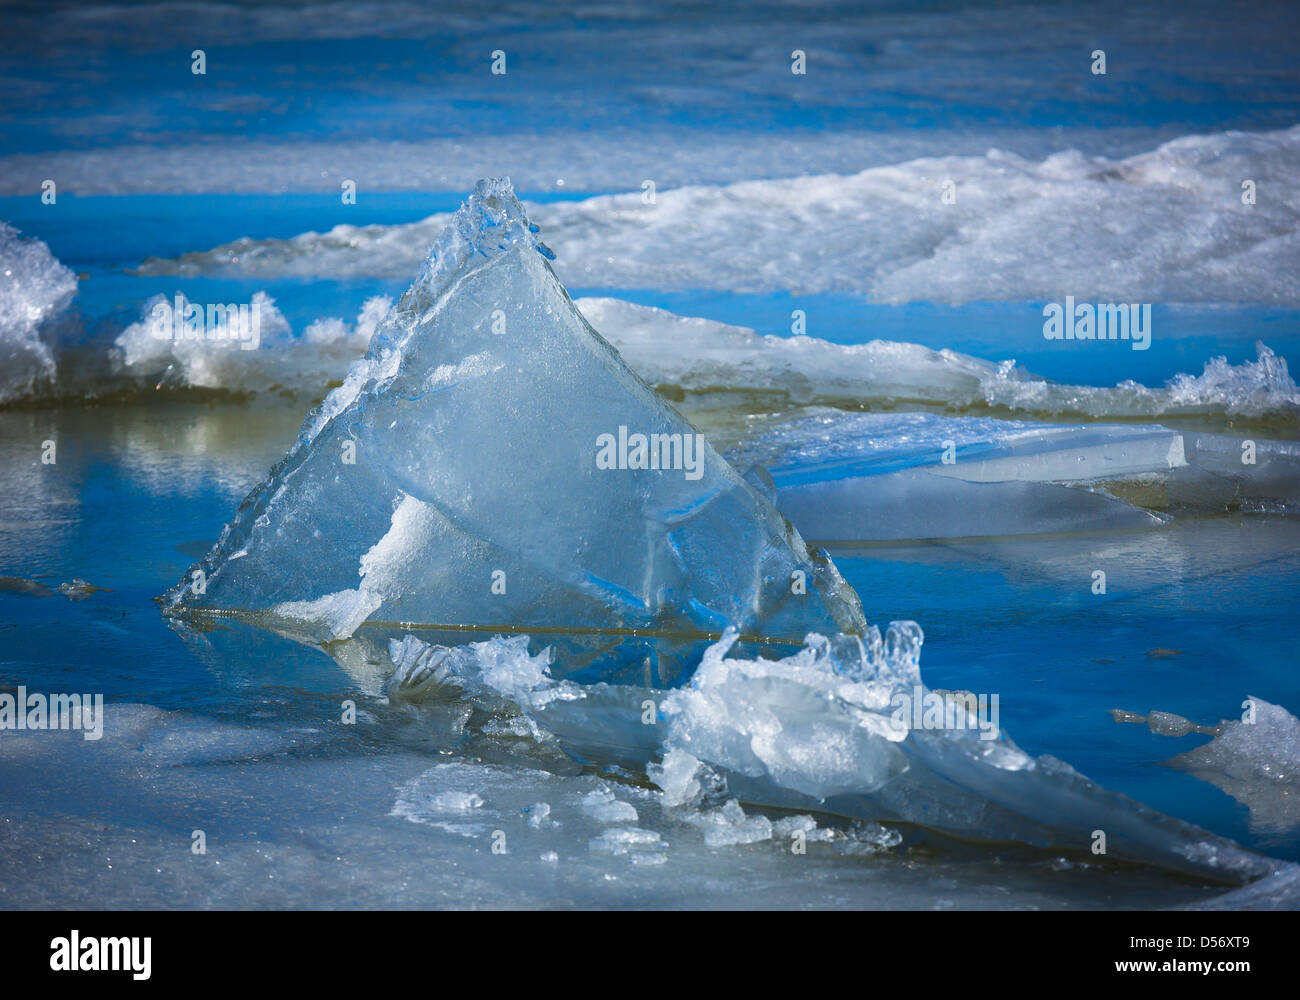 Triangular sheet of ice on Upper Klamath Lake in southern Oregon - Stock Image